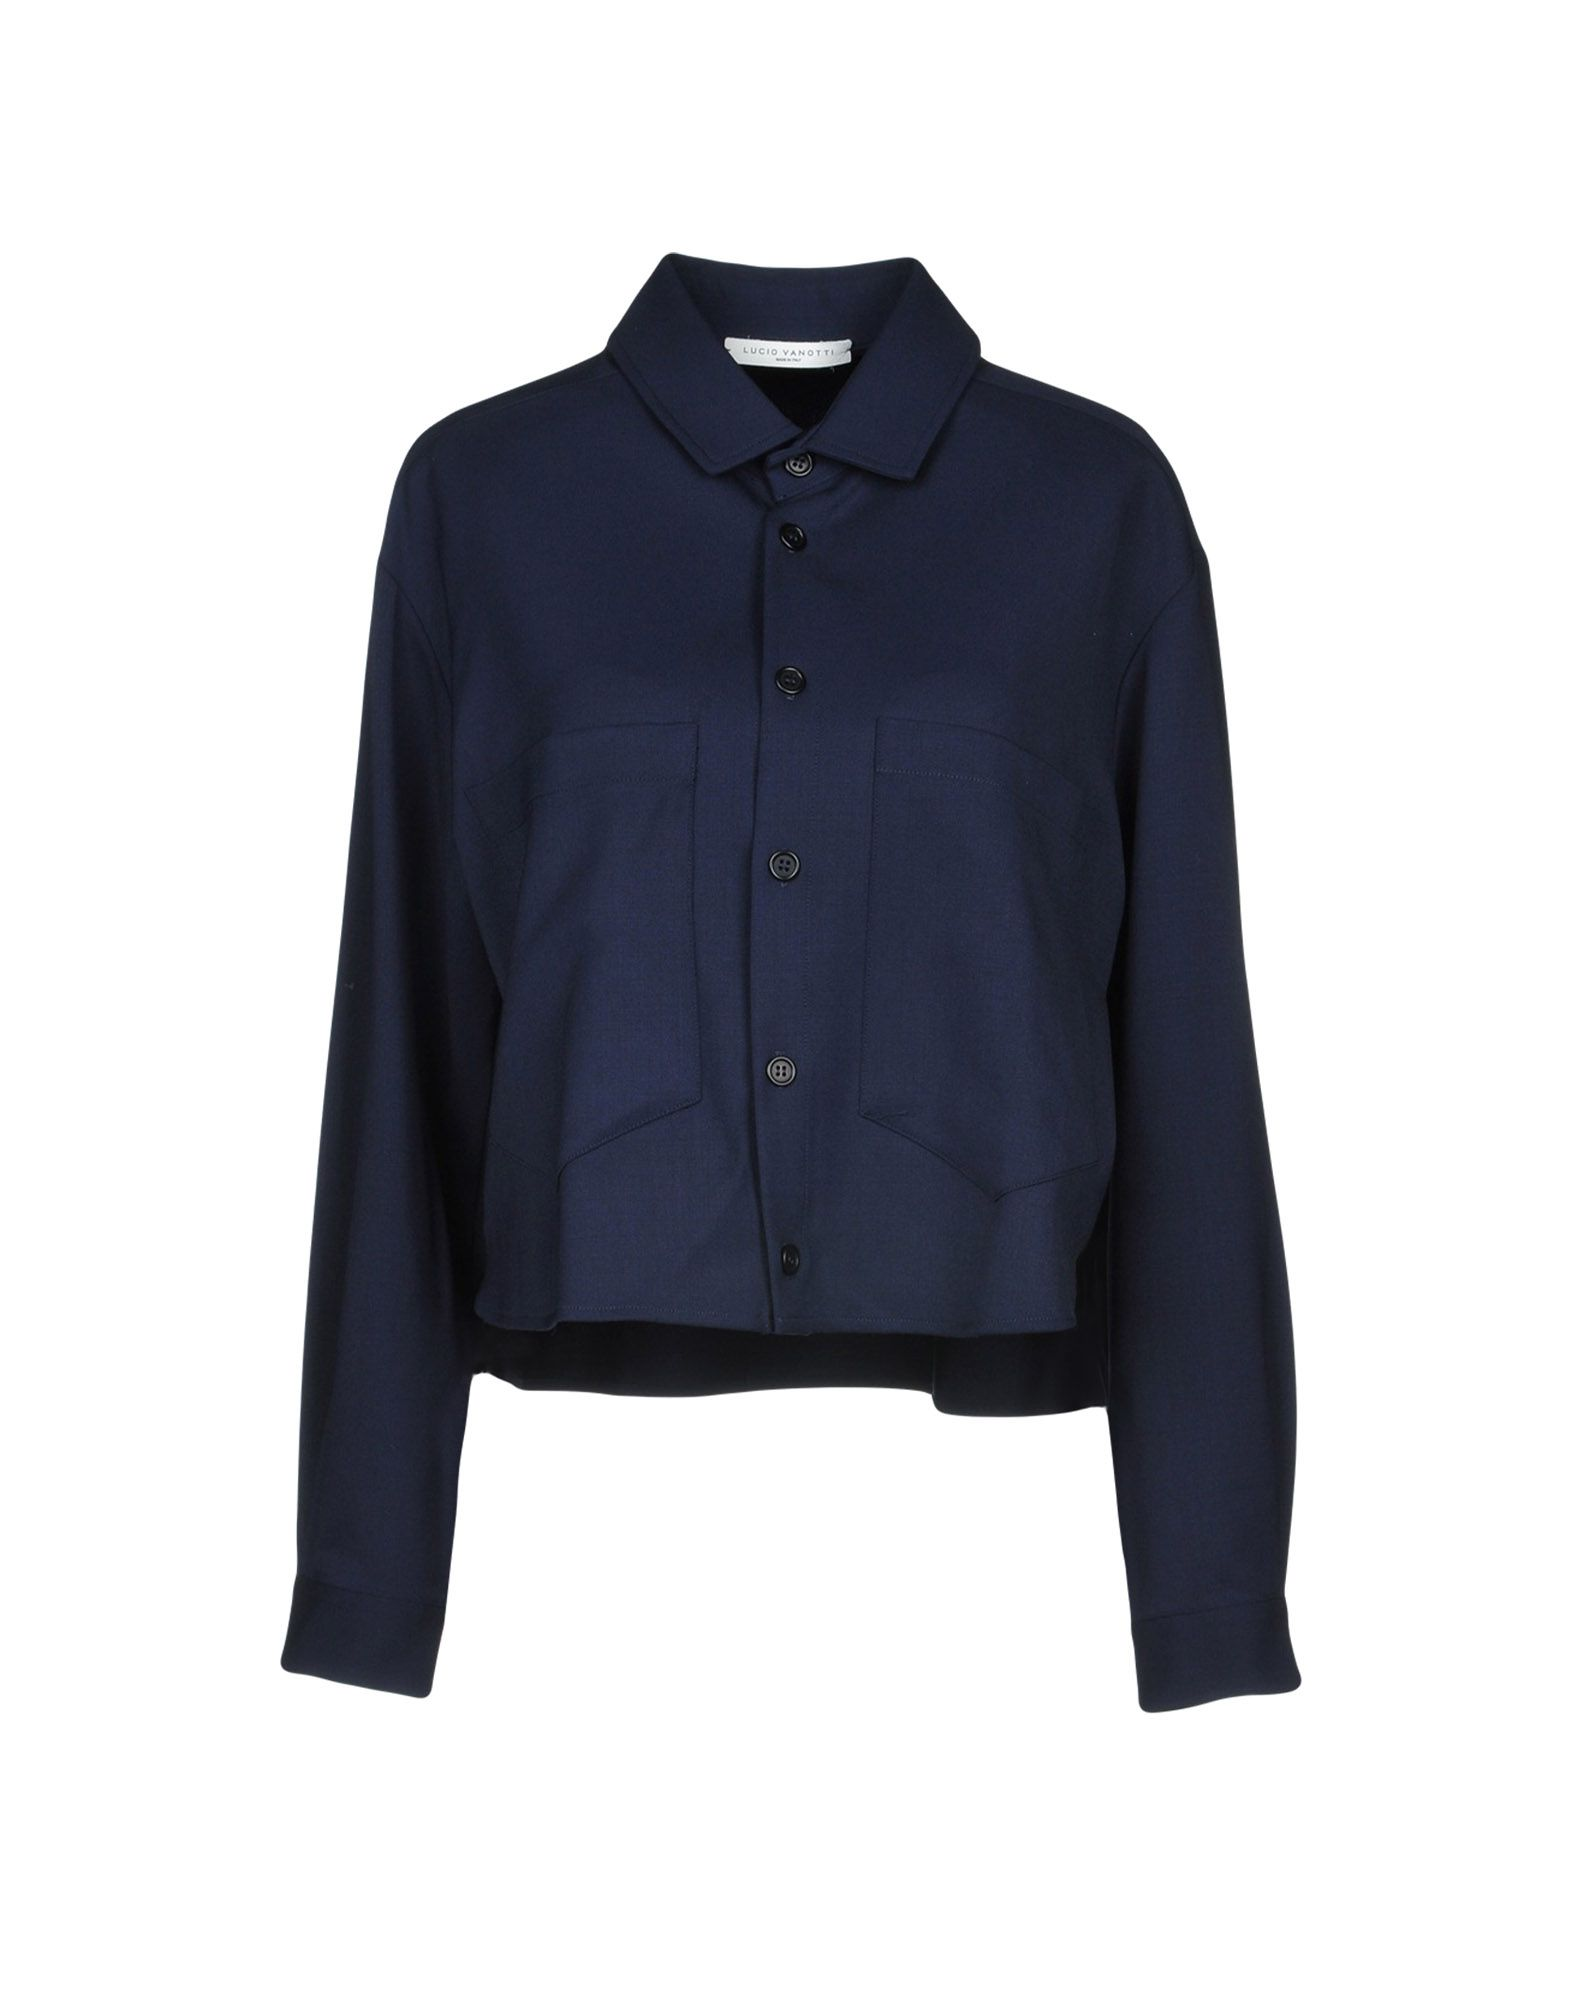 LUCIO VANOTTI Solid Color Shirts & Blouses in Dark Blue